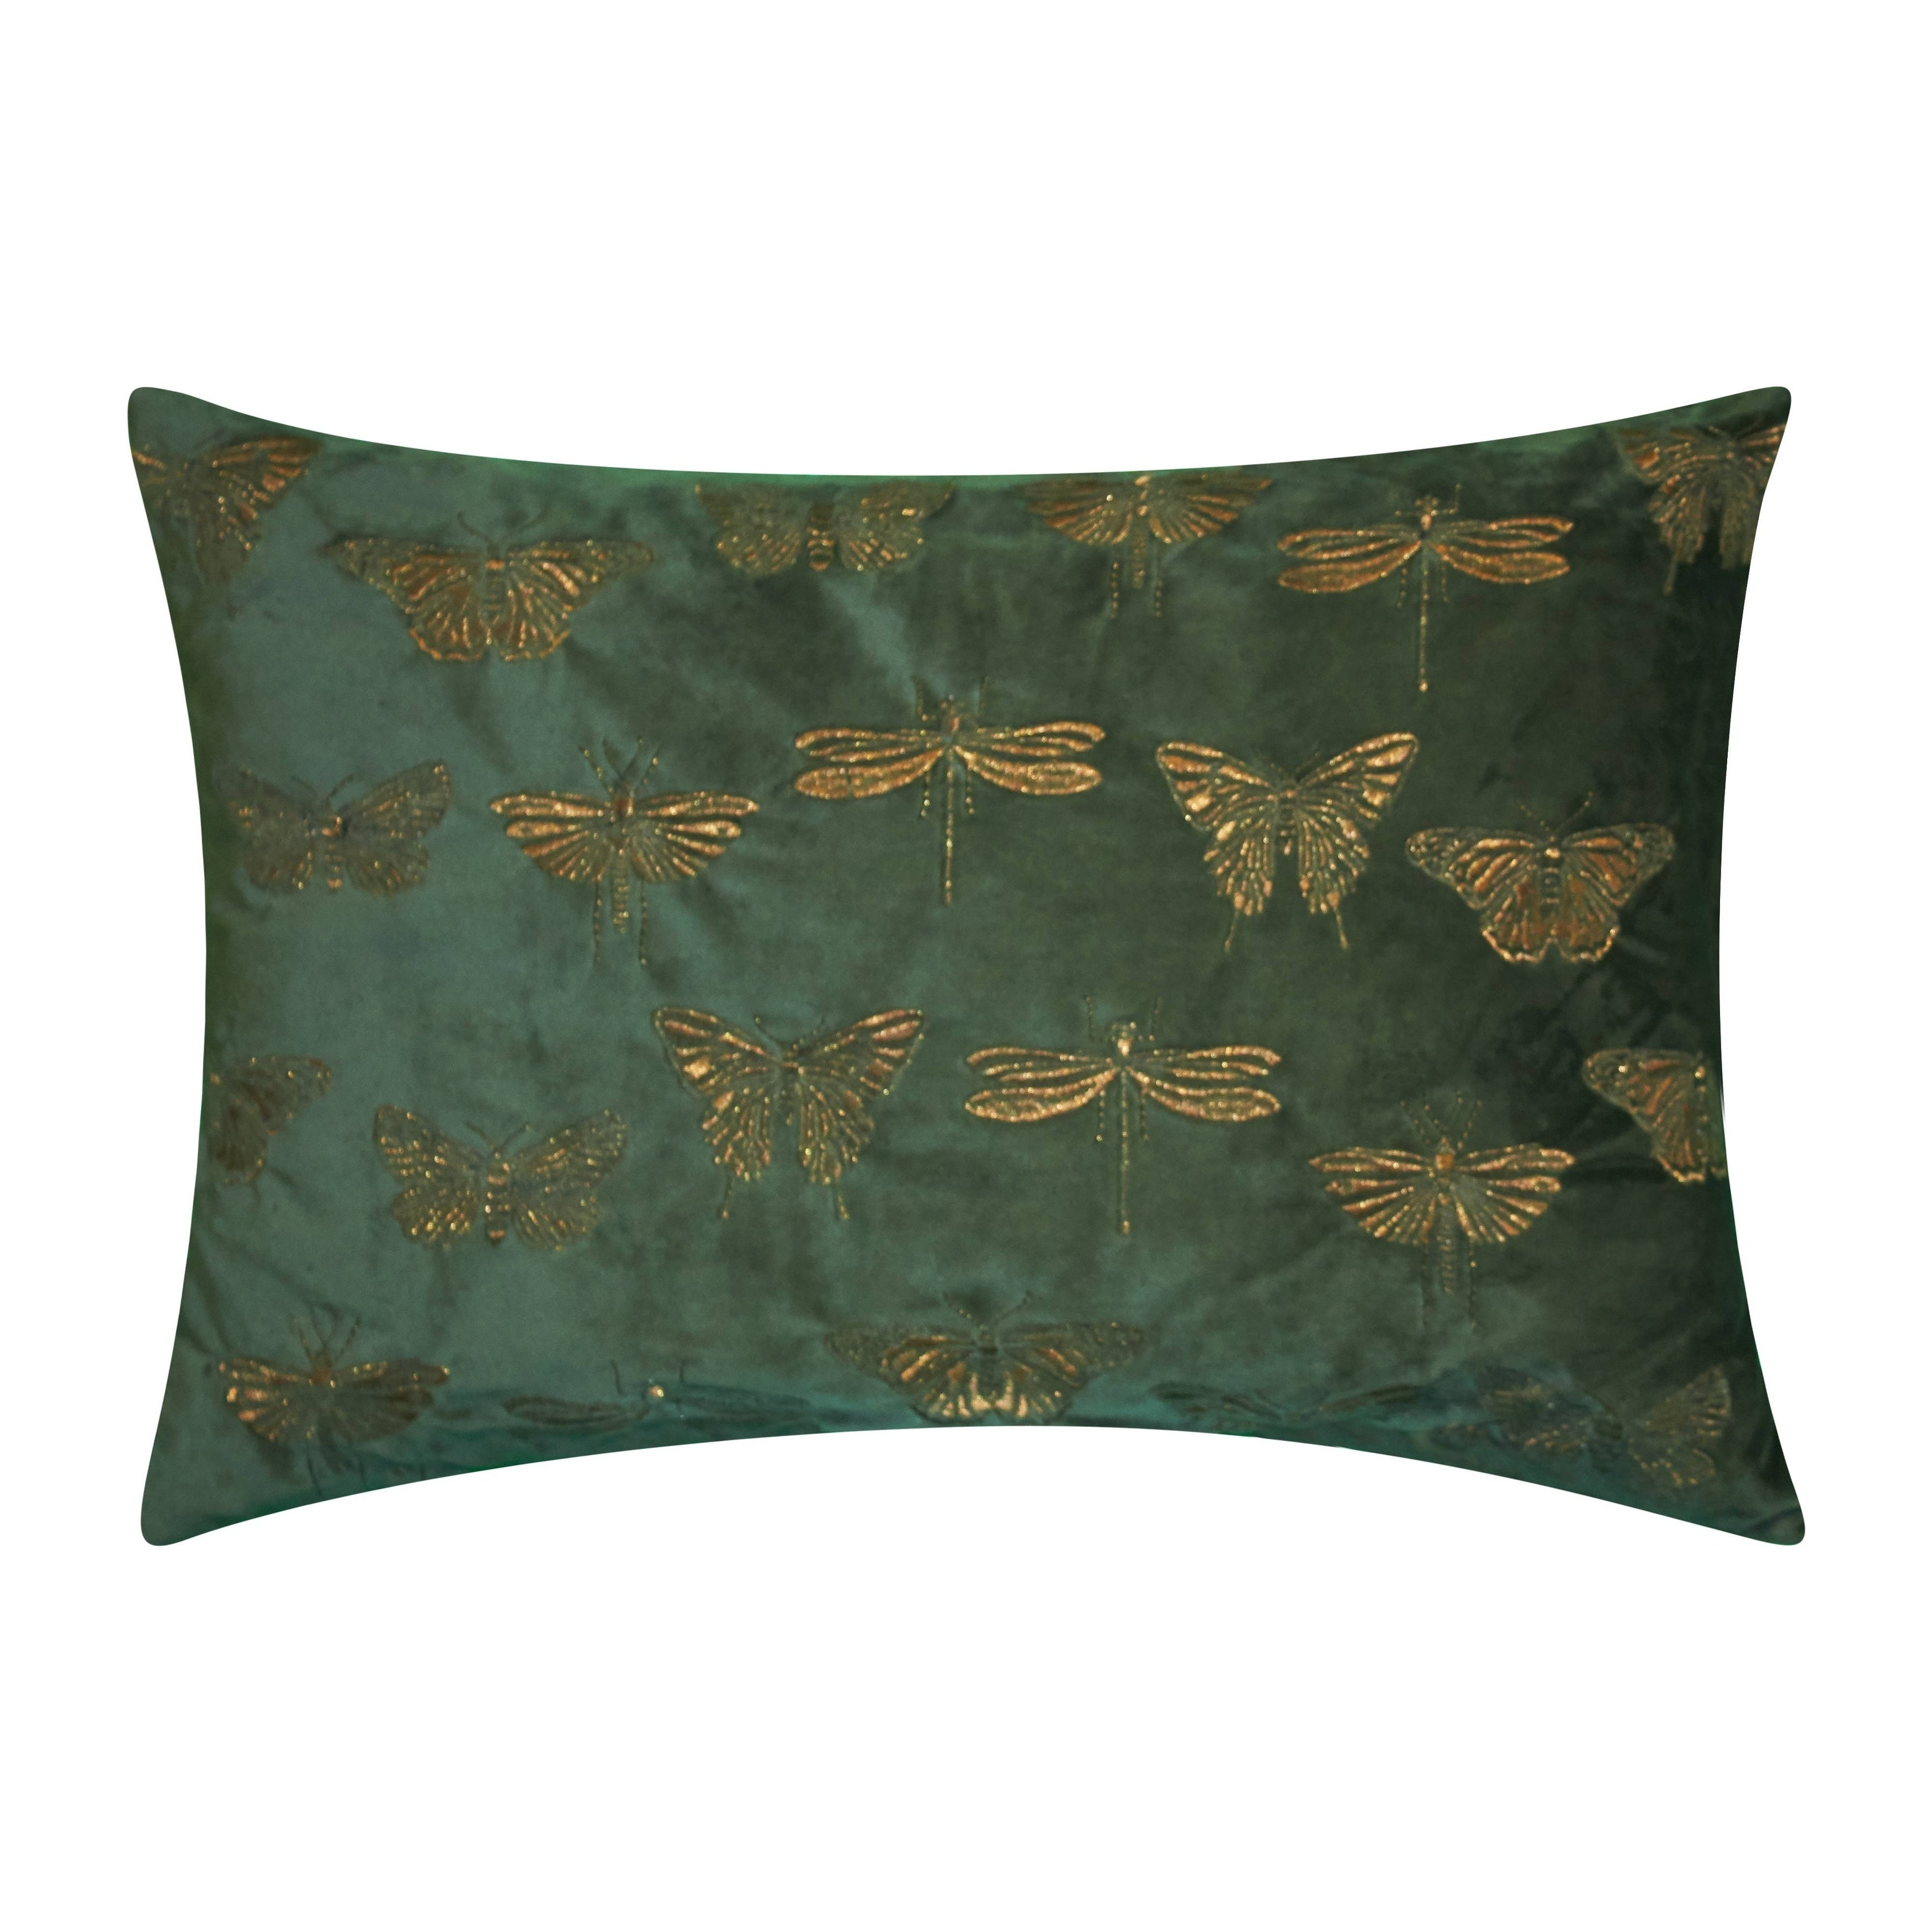 Edie At Home Butterfly Decorative Throw Pillow Forest Green Overstock 30121450